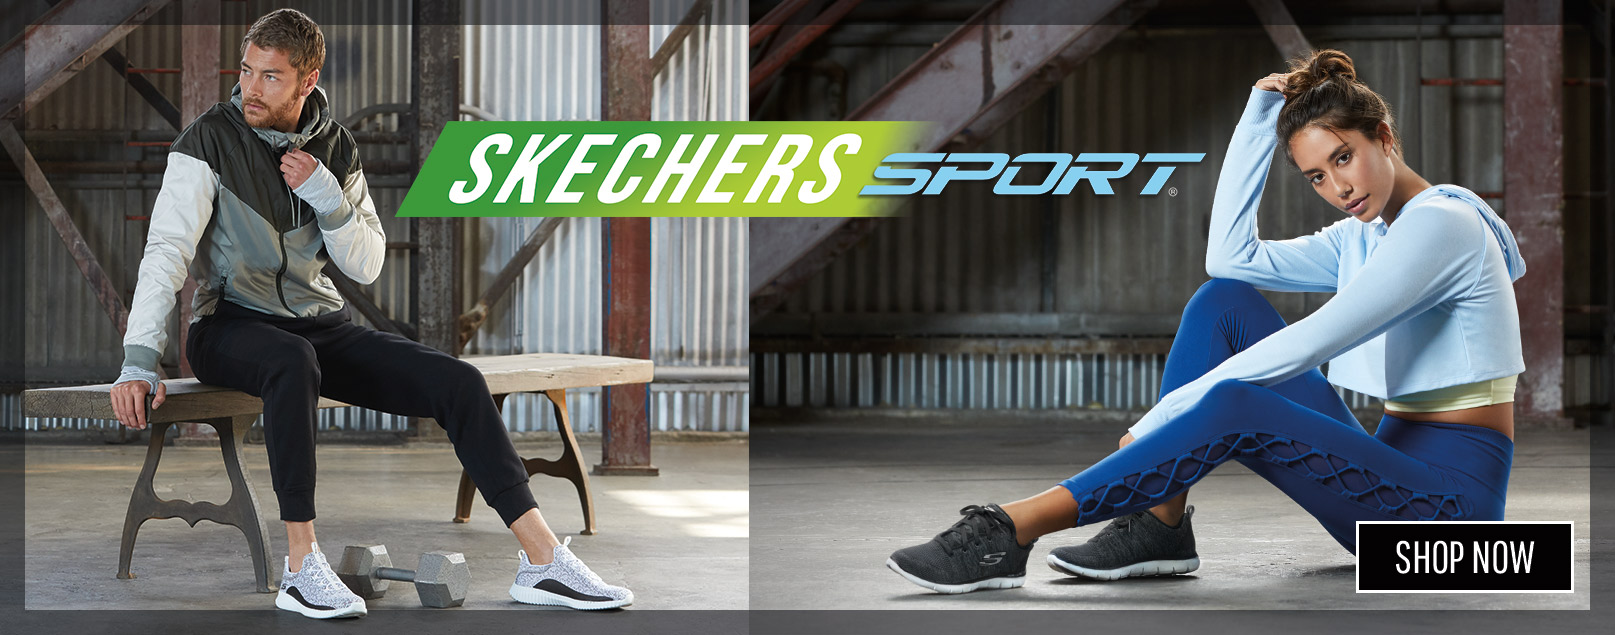 Get set to work out in advanced comfort and sleek style with SKECHERS Sport shoes and Skechers Apparel for men and women.